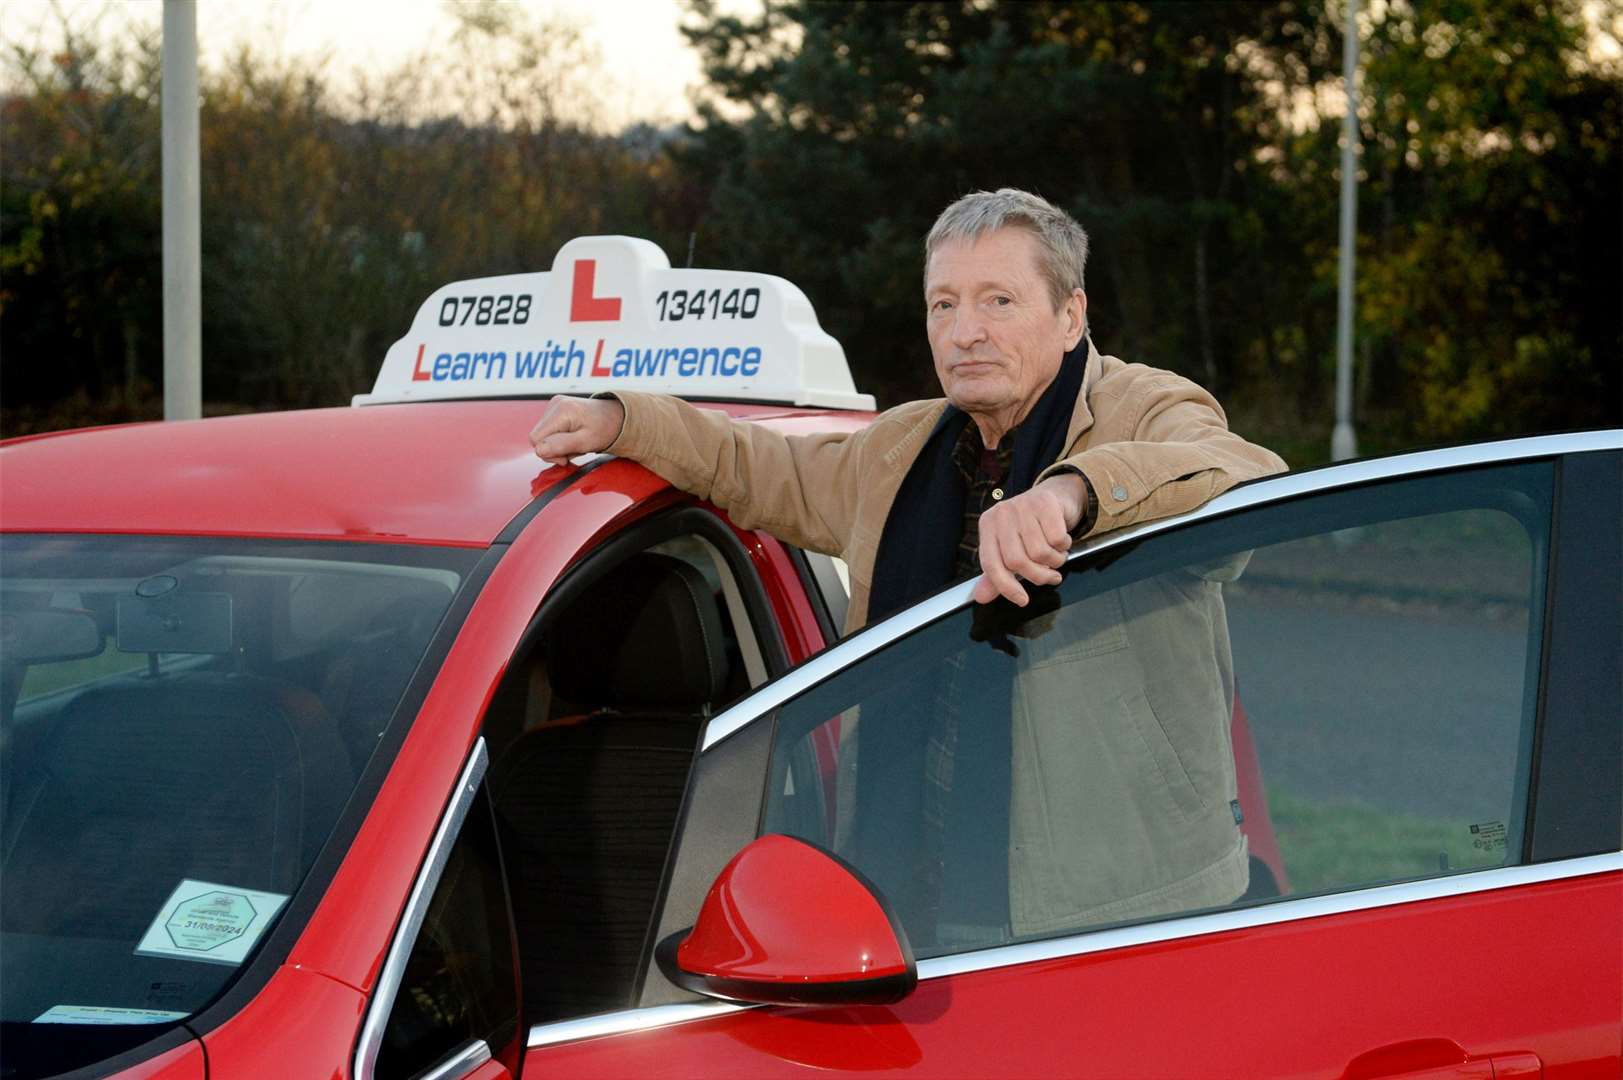 Driving instructor Lawrence MacLean says people from as far away as London are rearranging their driving tests to be taken in Inverness to beat the lockdown. Picture: James Mackenzie.